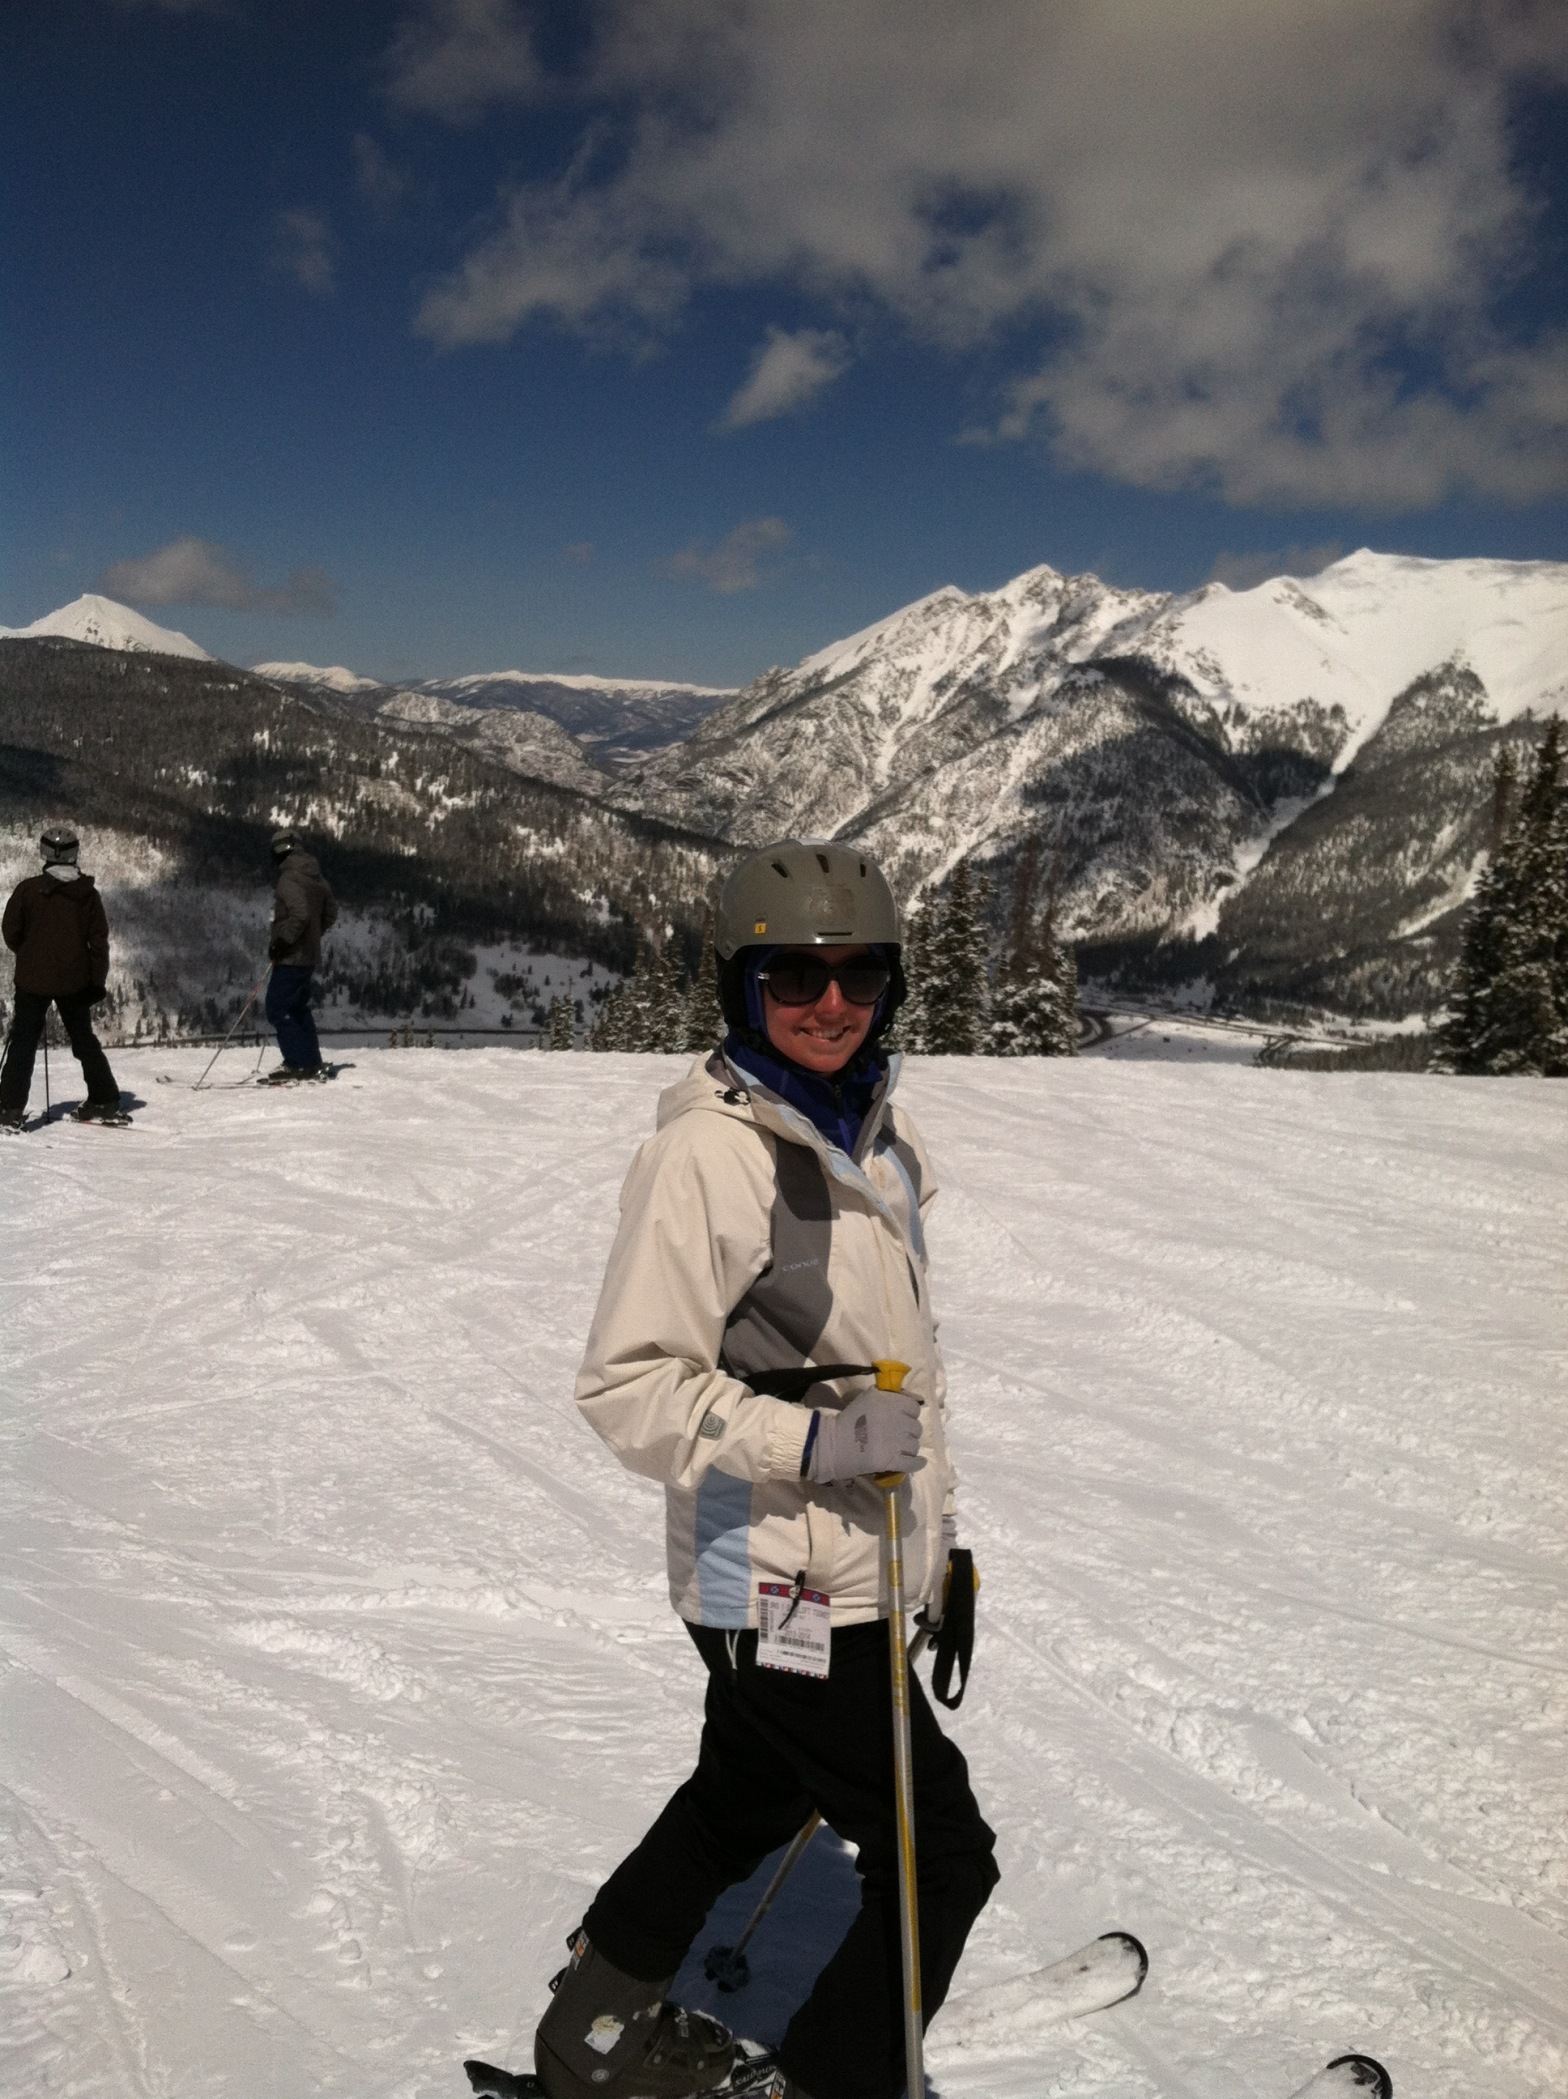 A woman goes skiing for the first time at Copper Mountain in Colorado